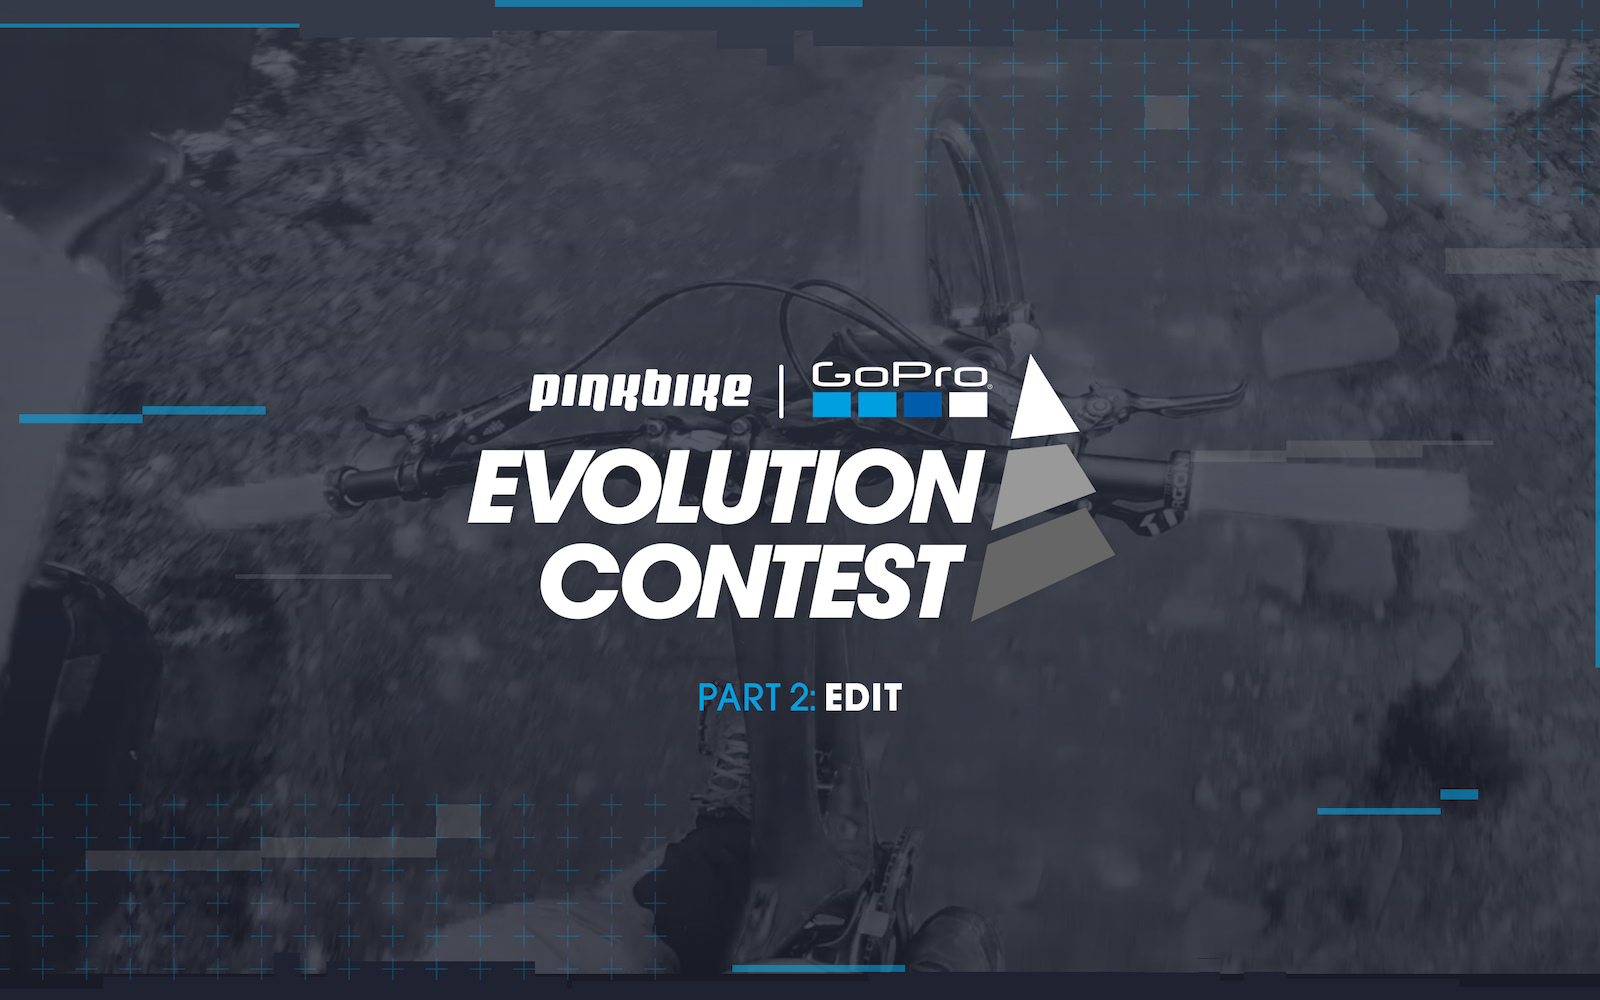 Go Pro Evolution Contest - Part 2 Edit